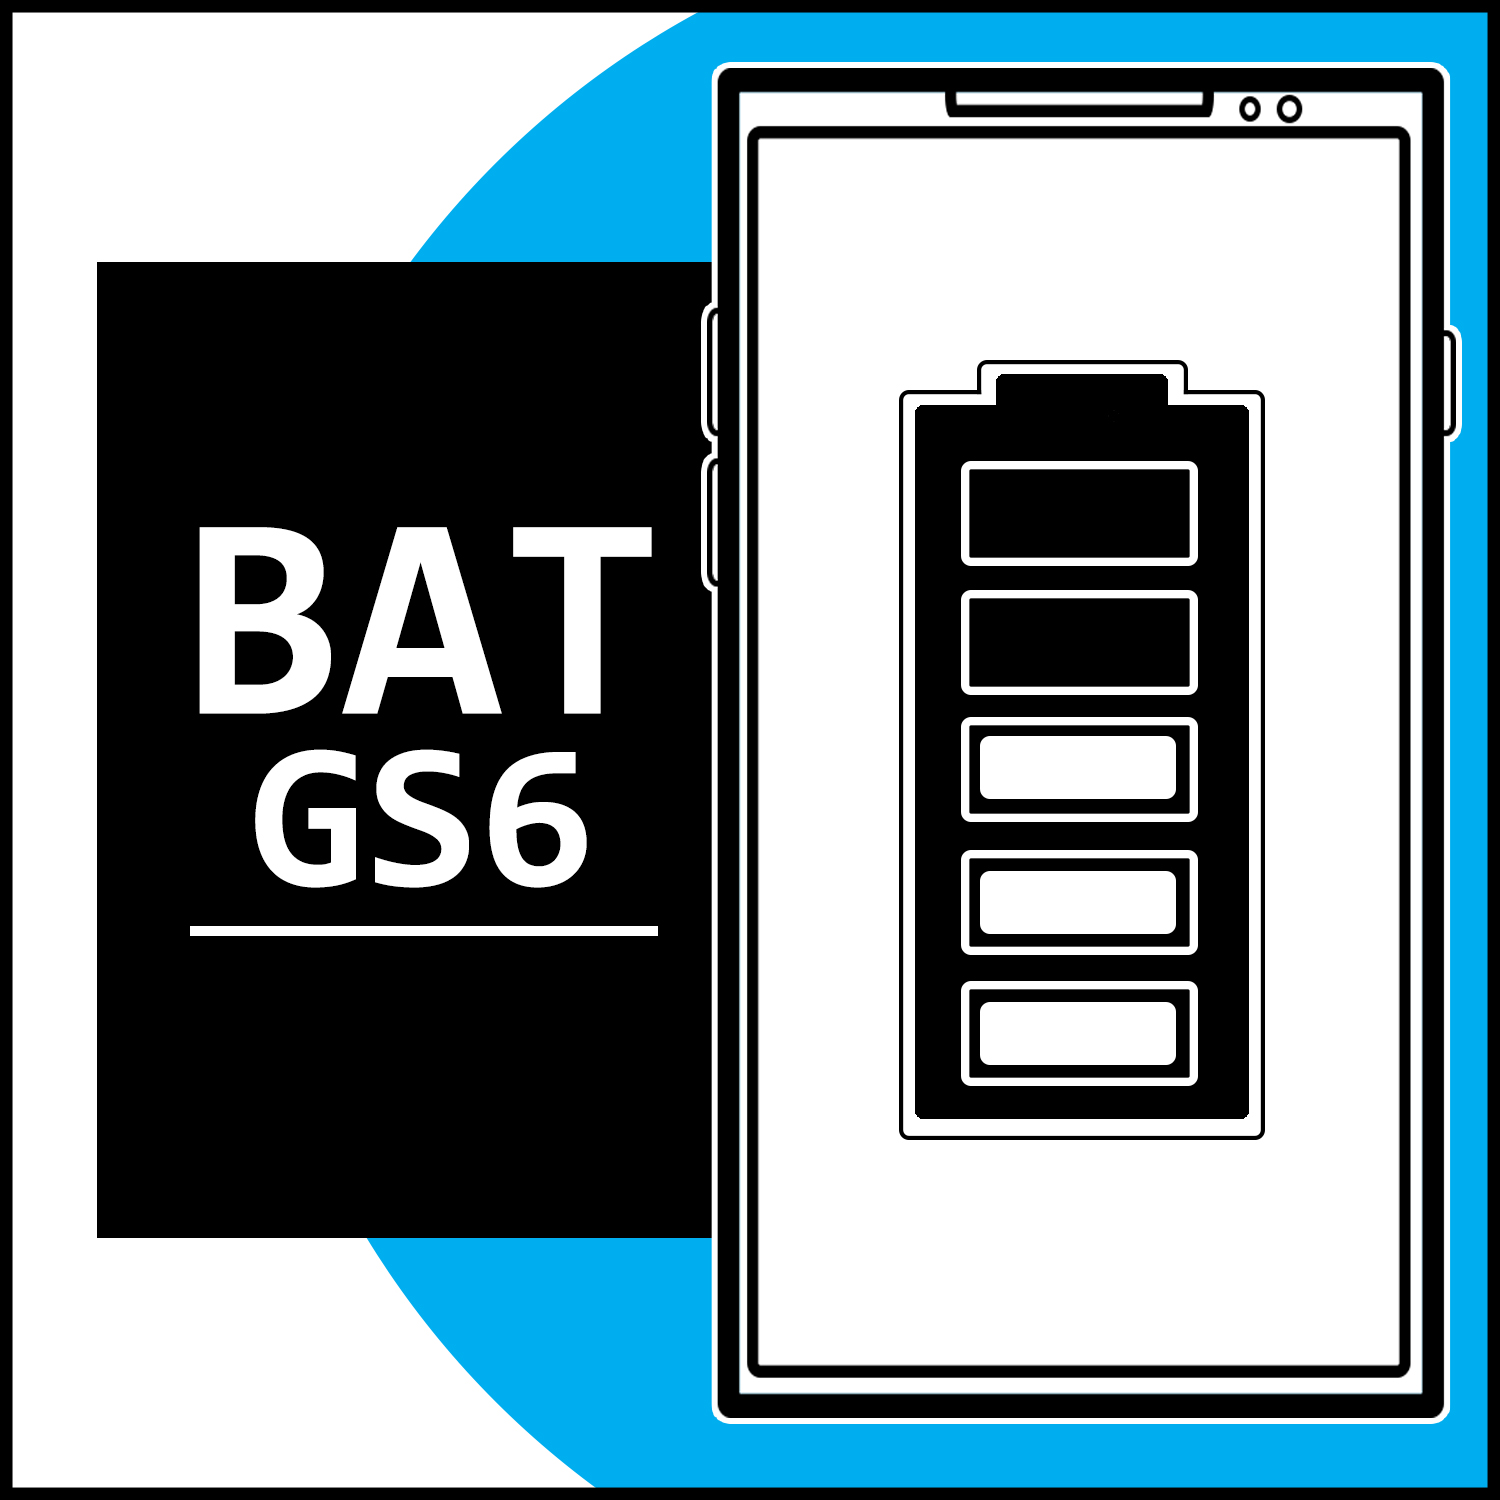 GS6 BAT logo.jpg